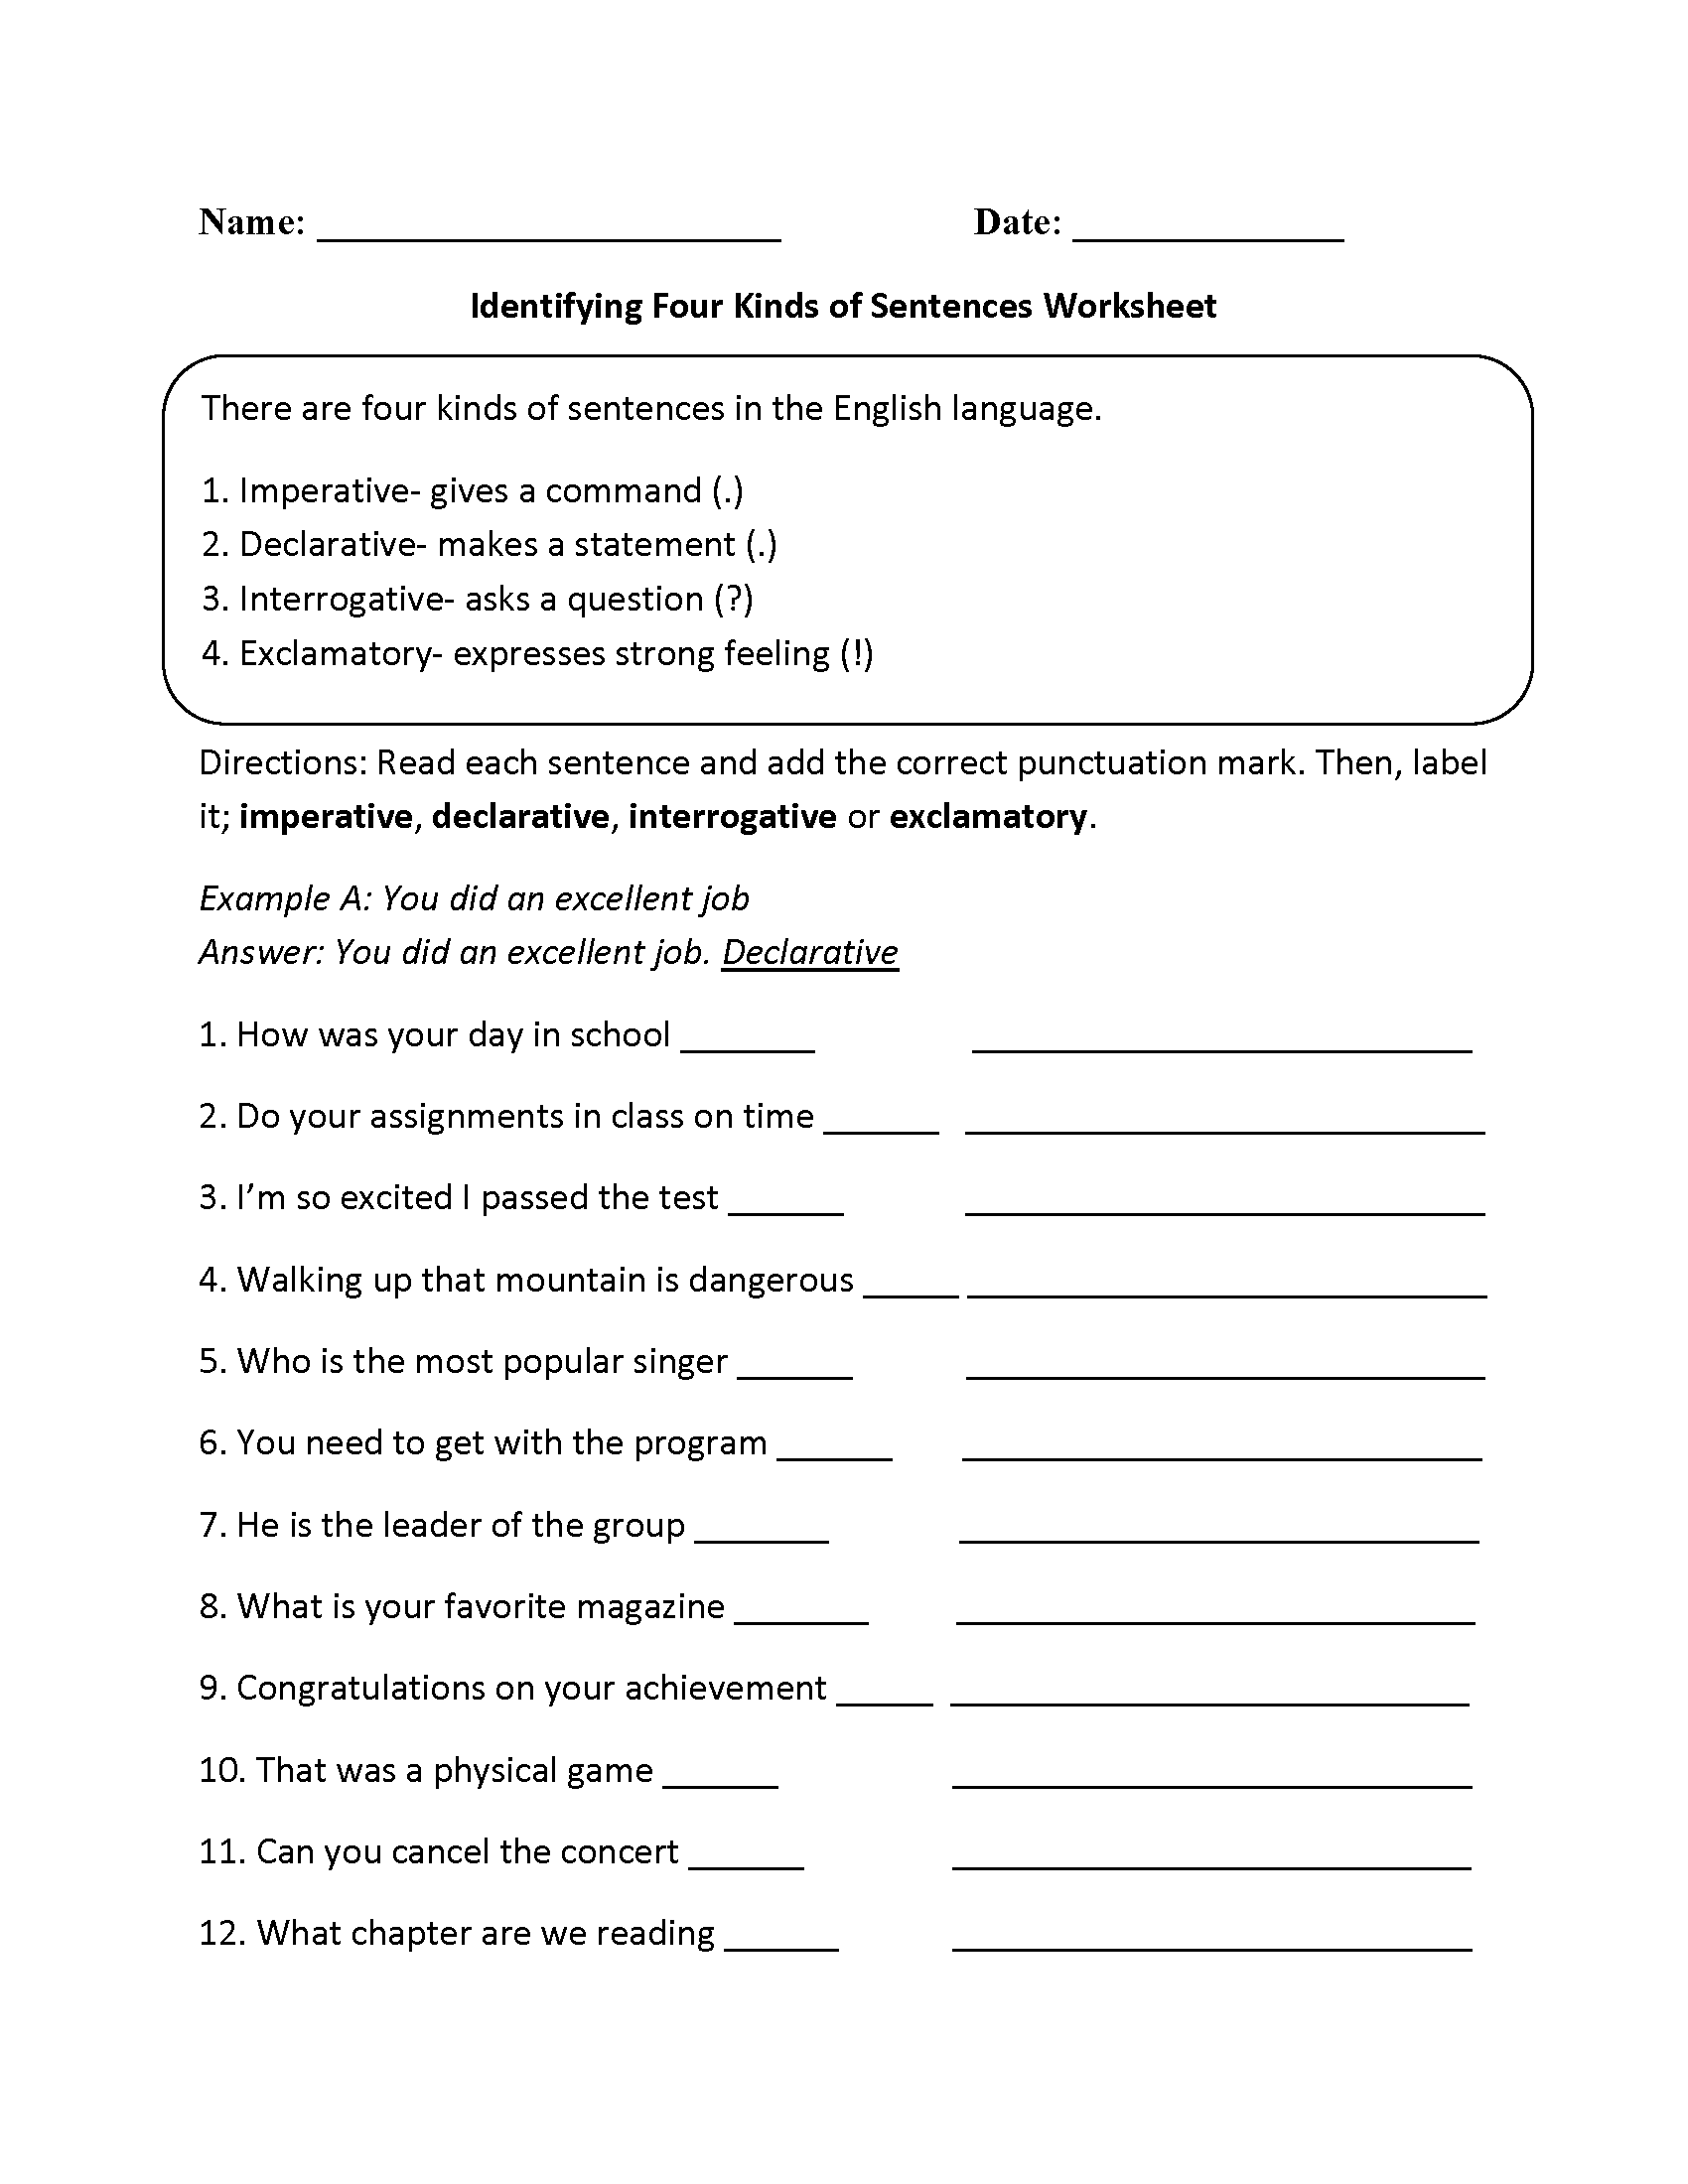 Worksheets Four Kinds Of Sentences Worksheet practicing four kinds of sentences worksheet language arts pinterest worksheets and arts